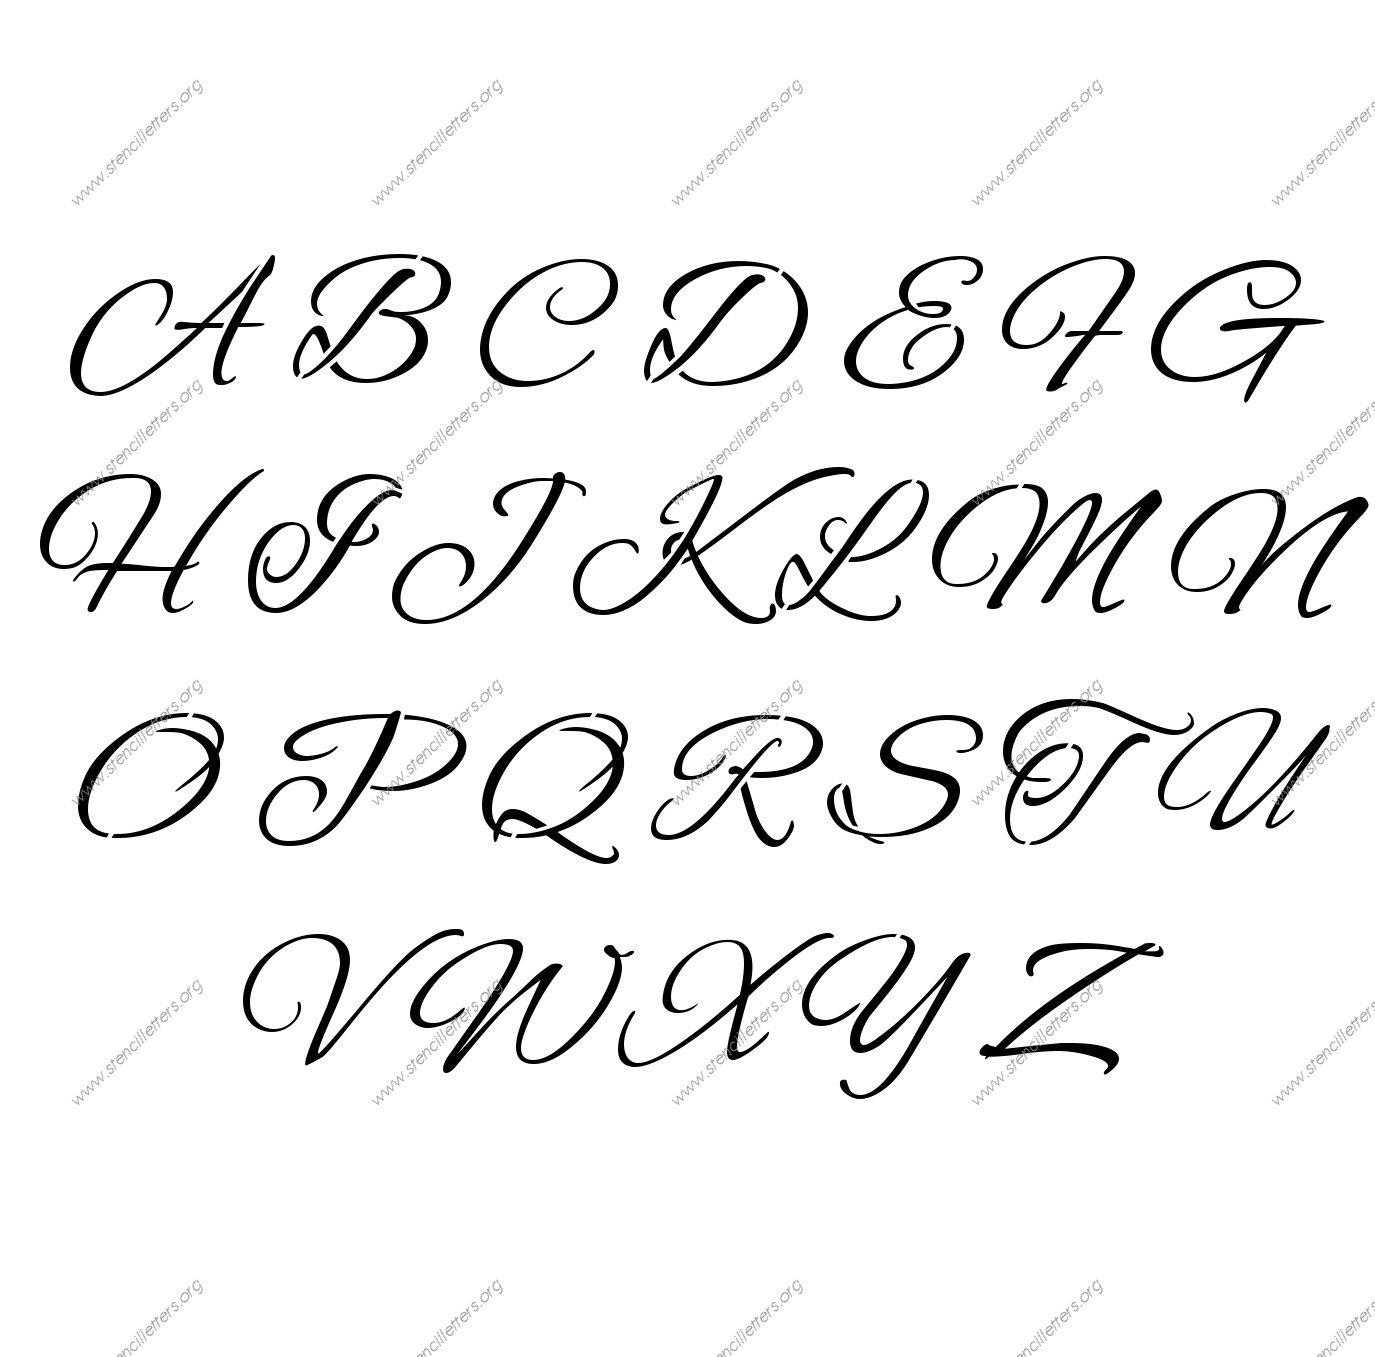 Flowing Cursive A to Z uppercase lowercase letter stencil set